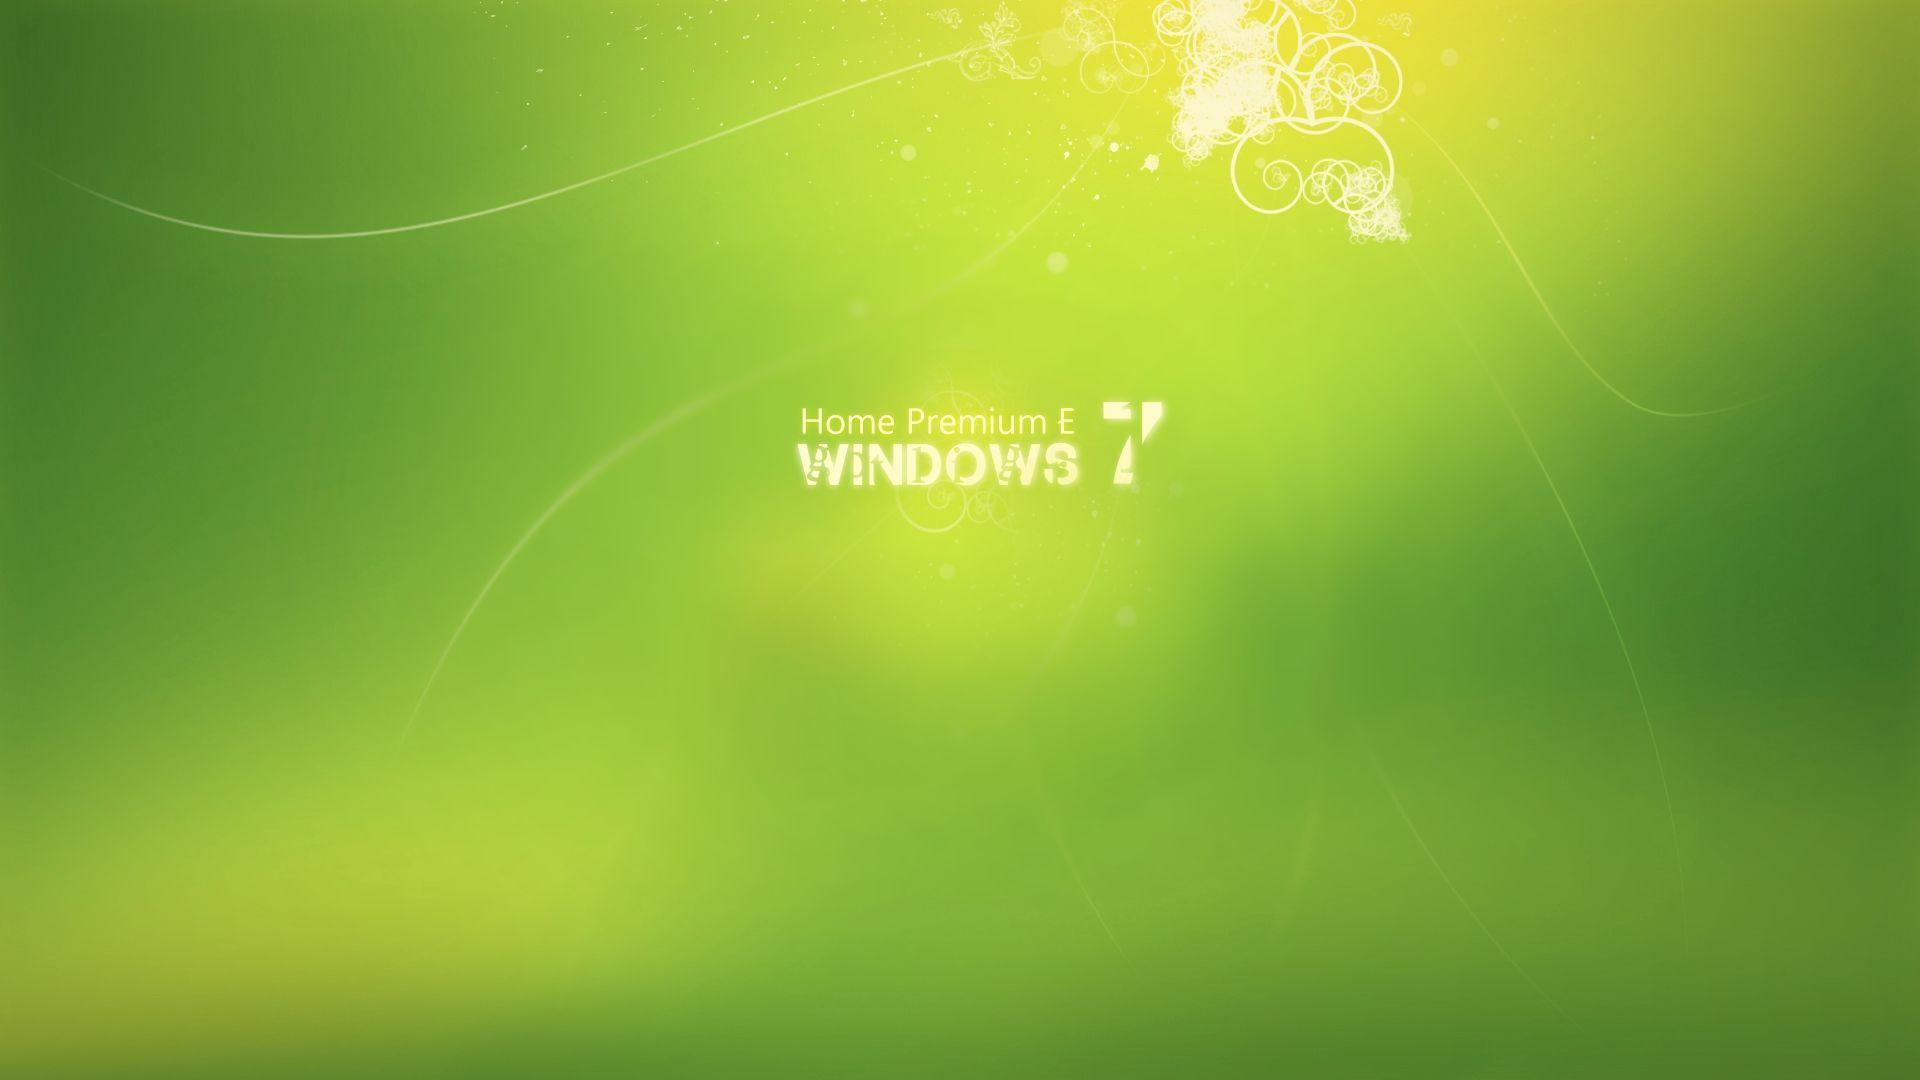 Windows 7 Home Premium HD Wallpapers